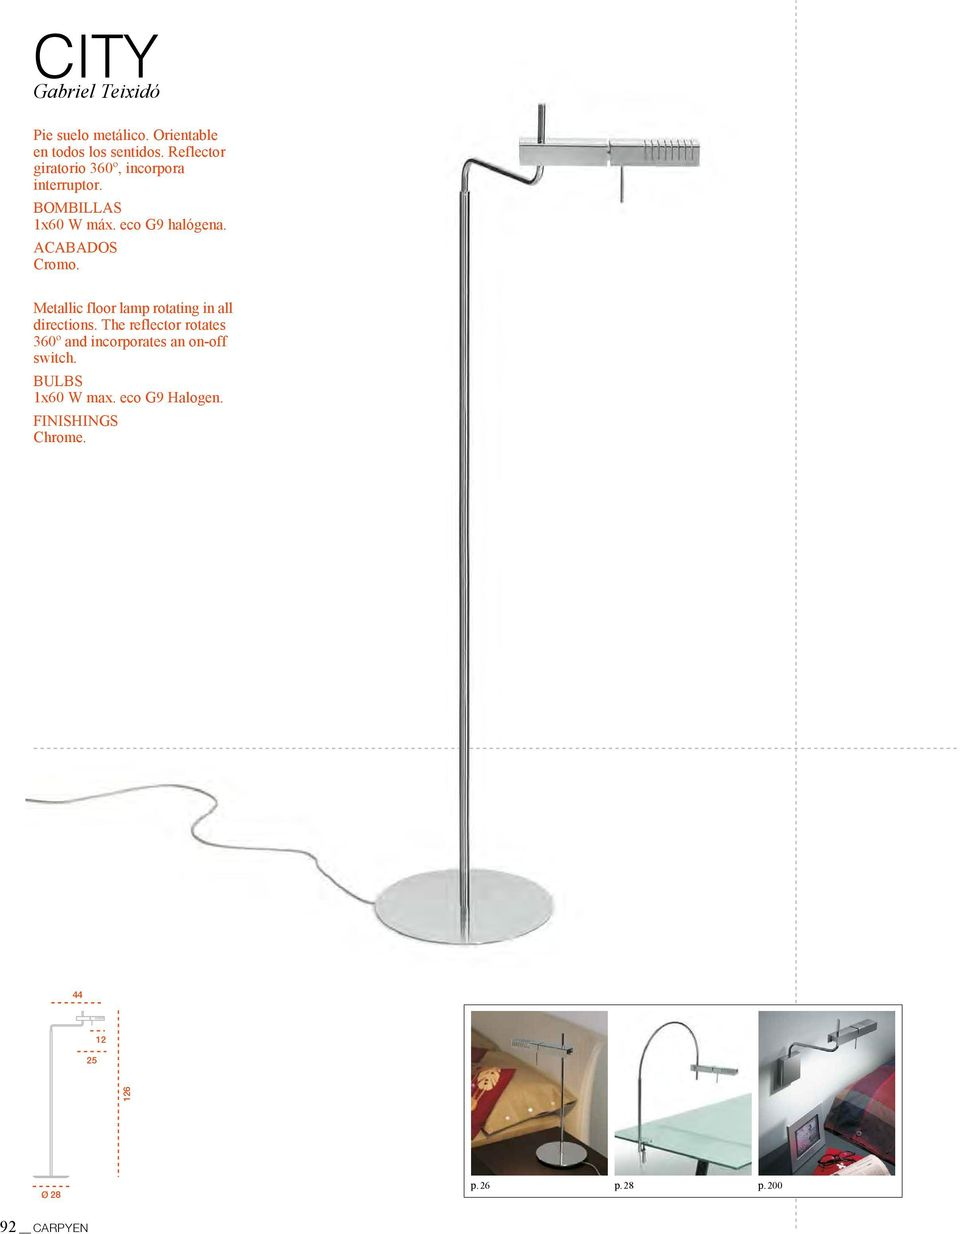 ACABADOS Cromo. Metallic floor lamp rotating in all directions.